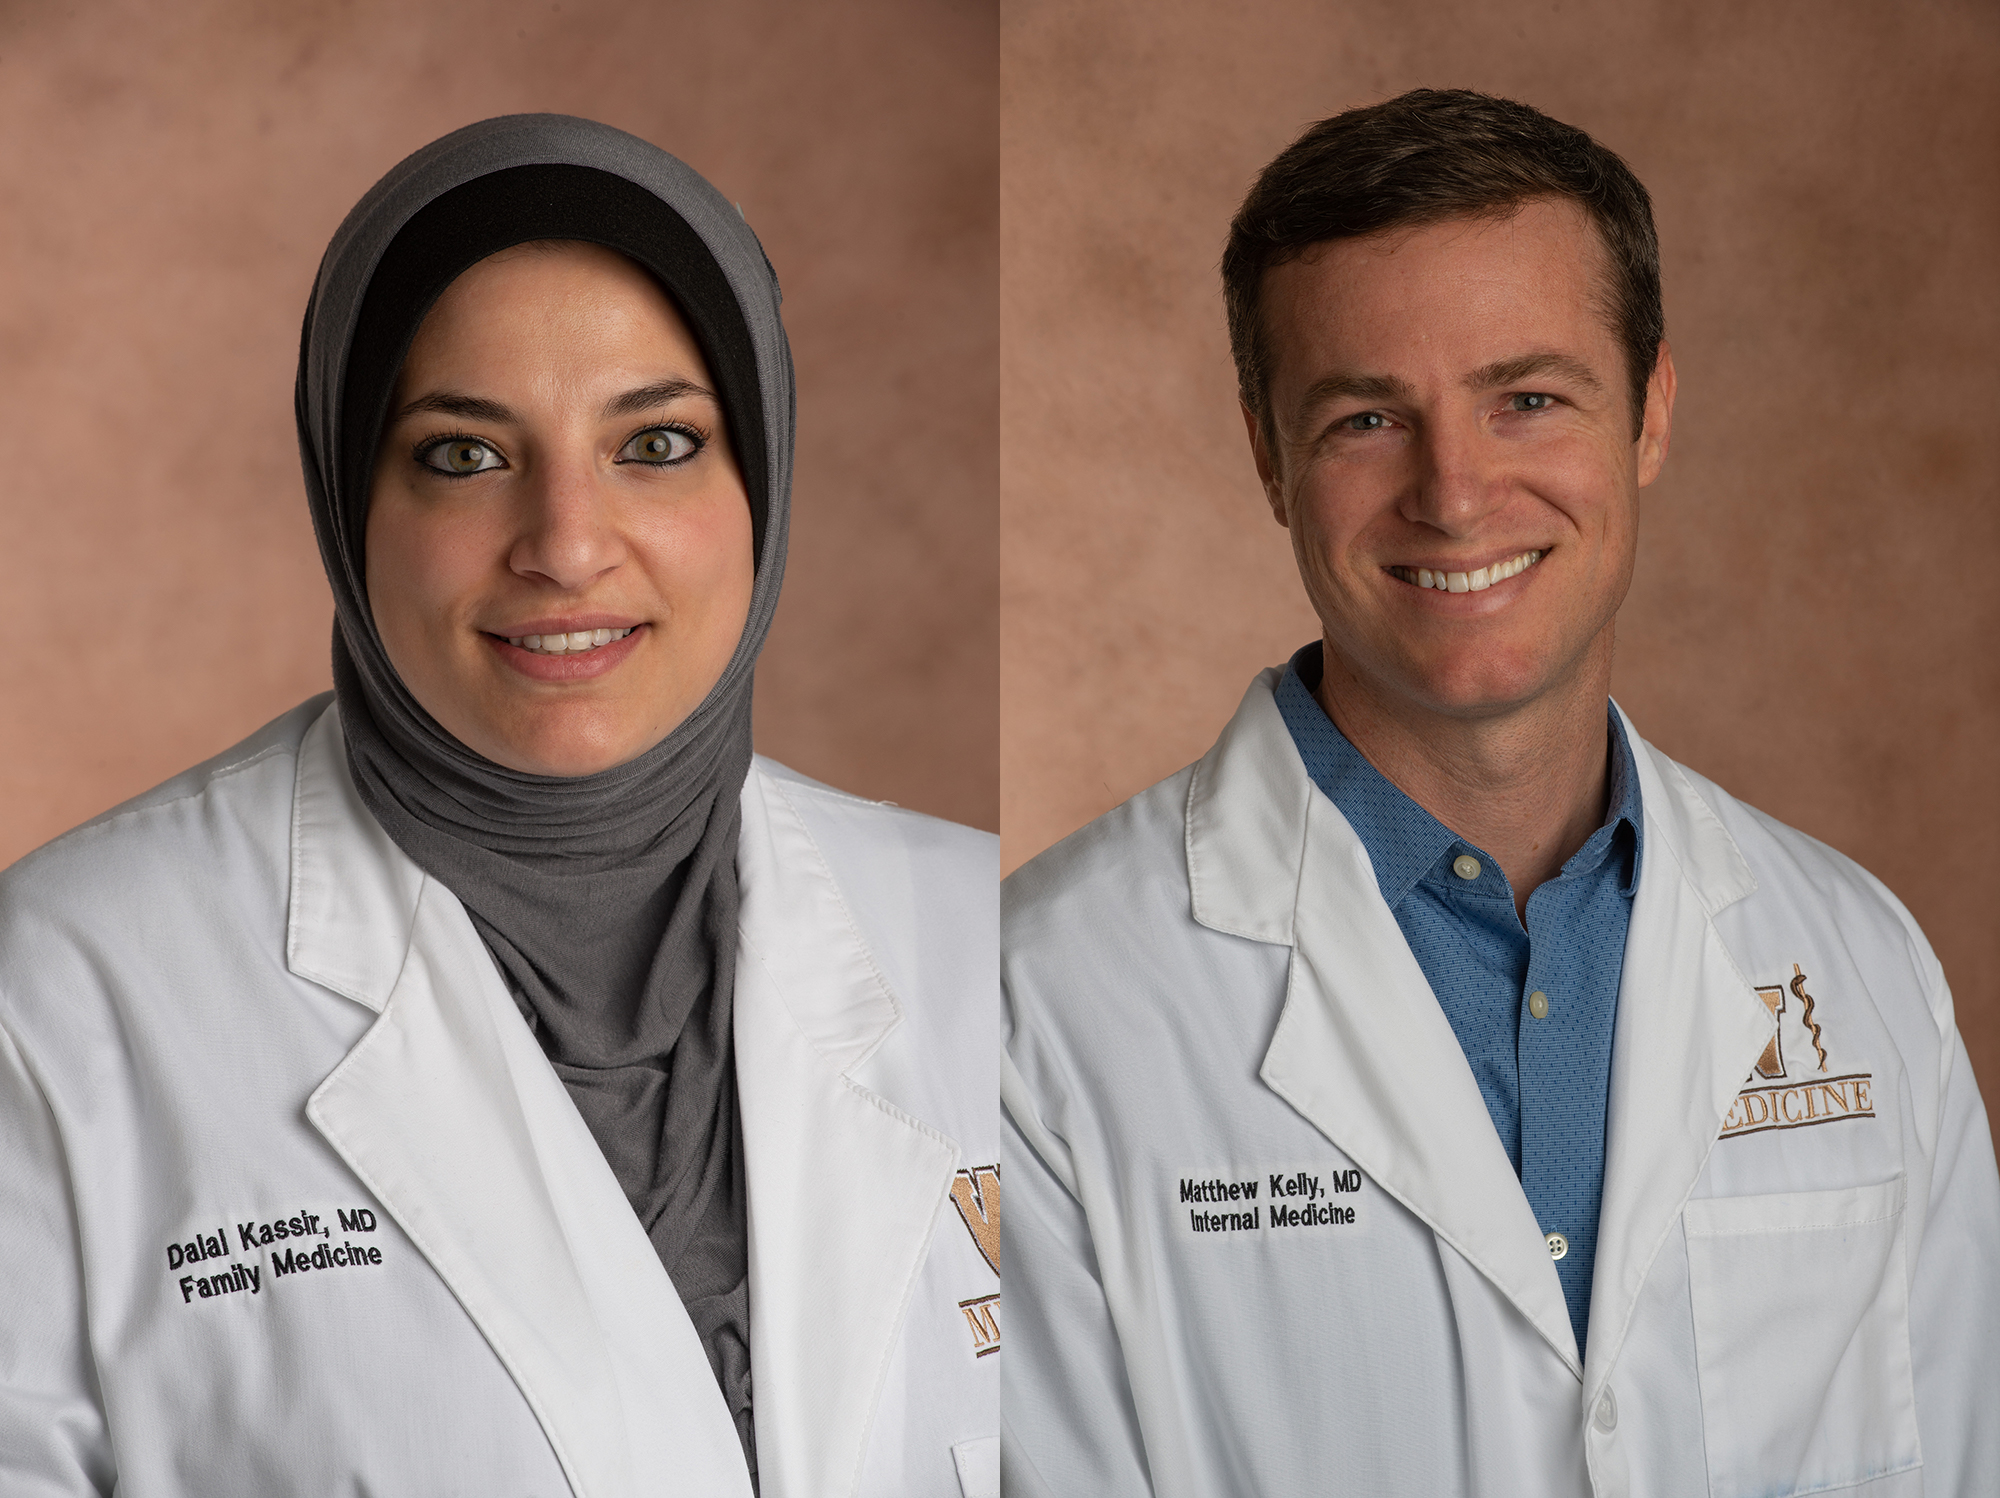 Drs. Dalal Kassir and Matt Kelly